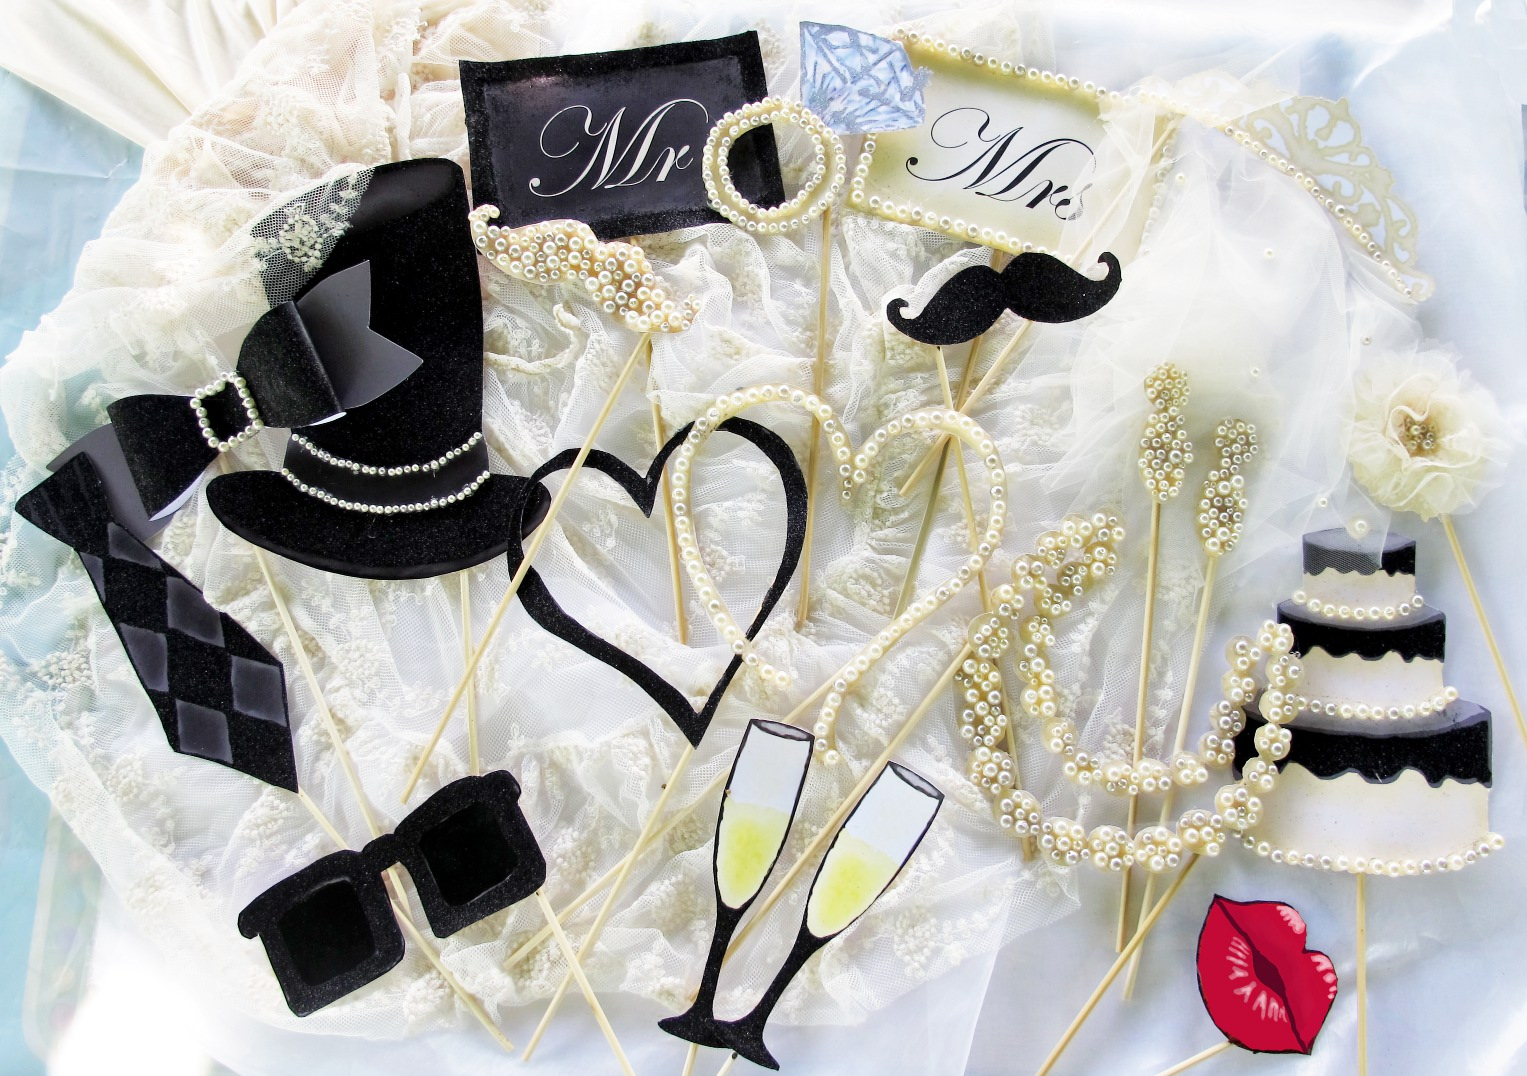 Wedding Photo Booth Props For An Elegant Party Part 2 The Other Version